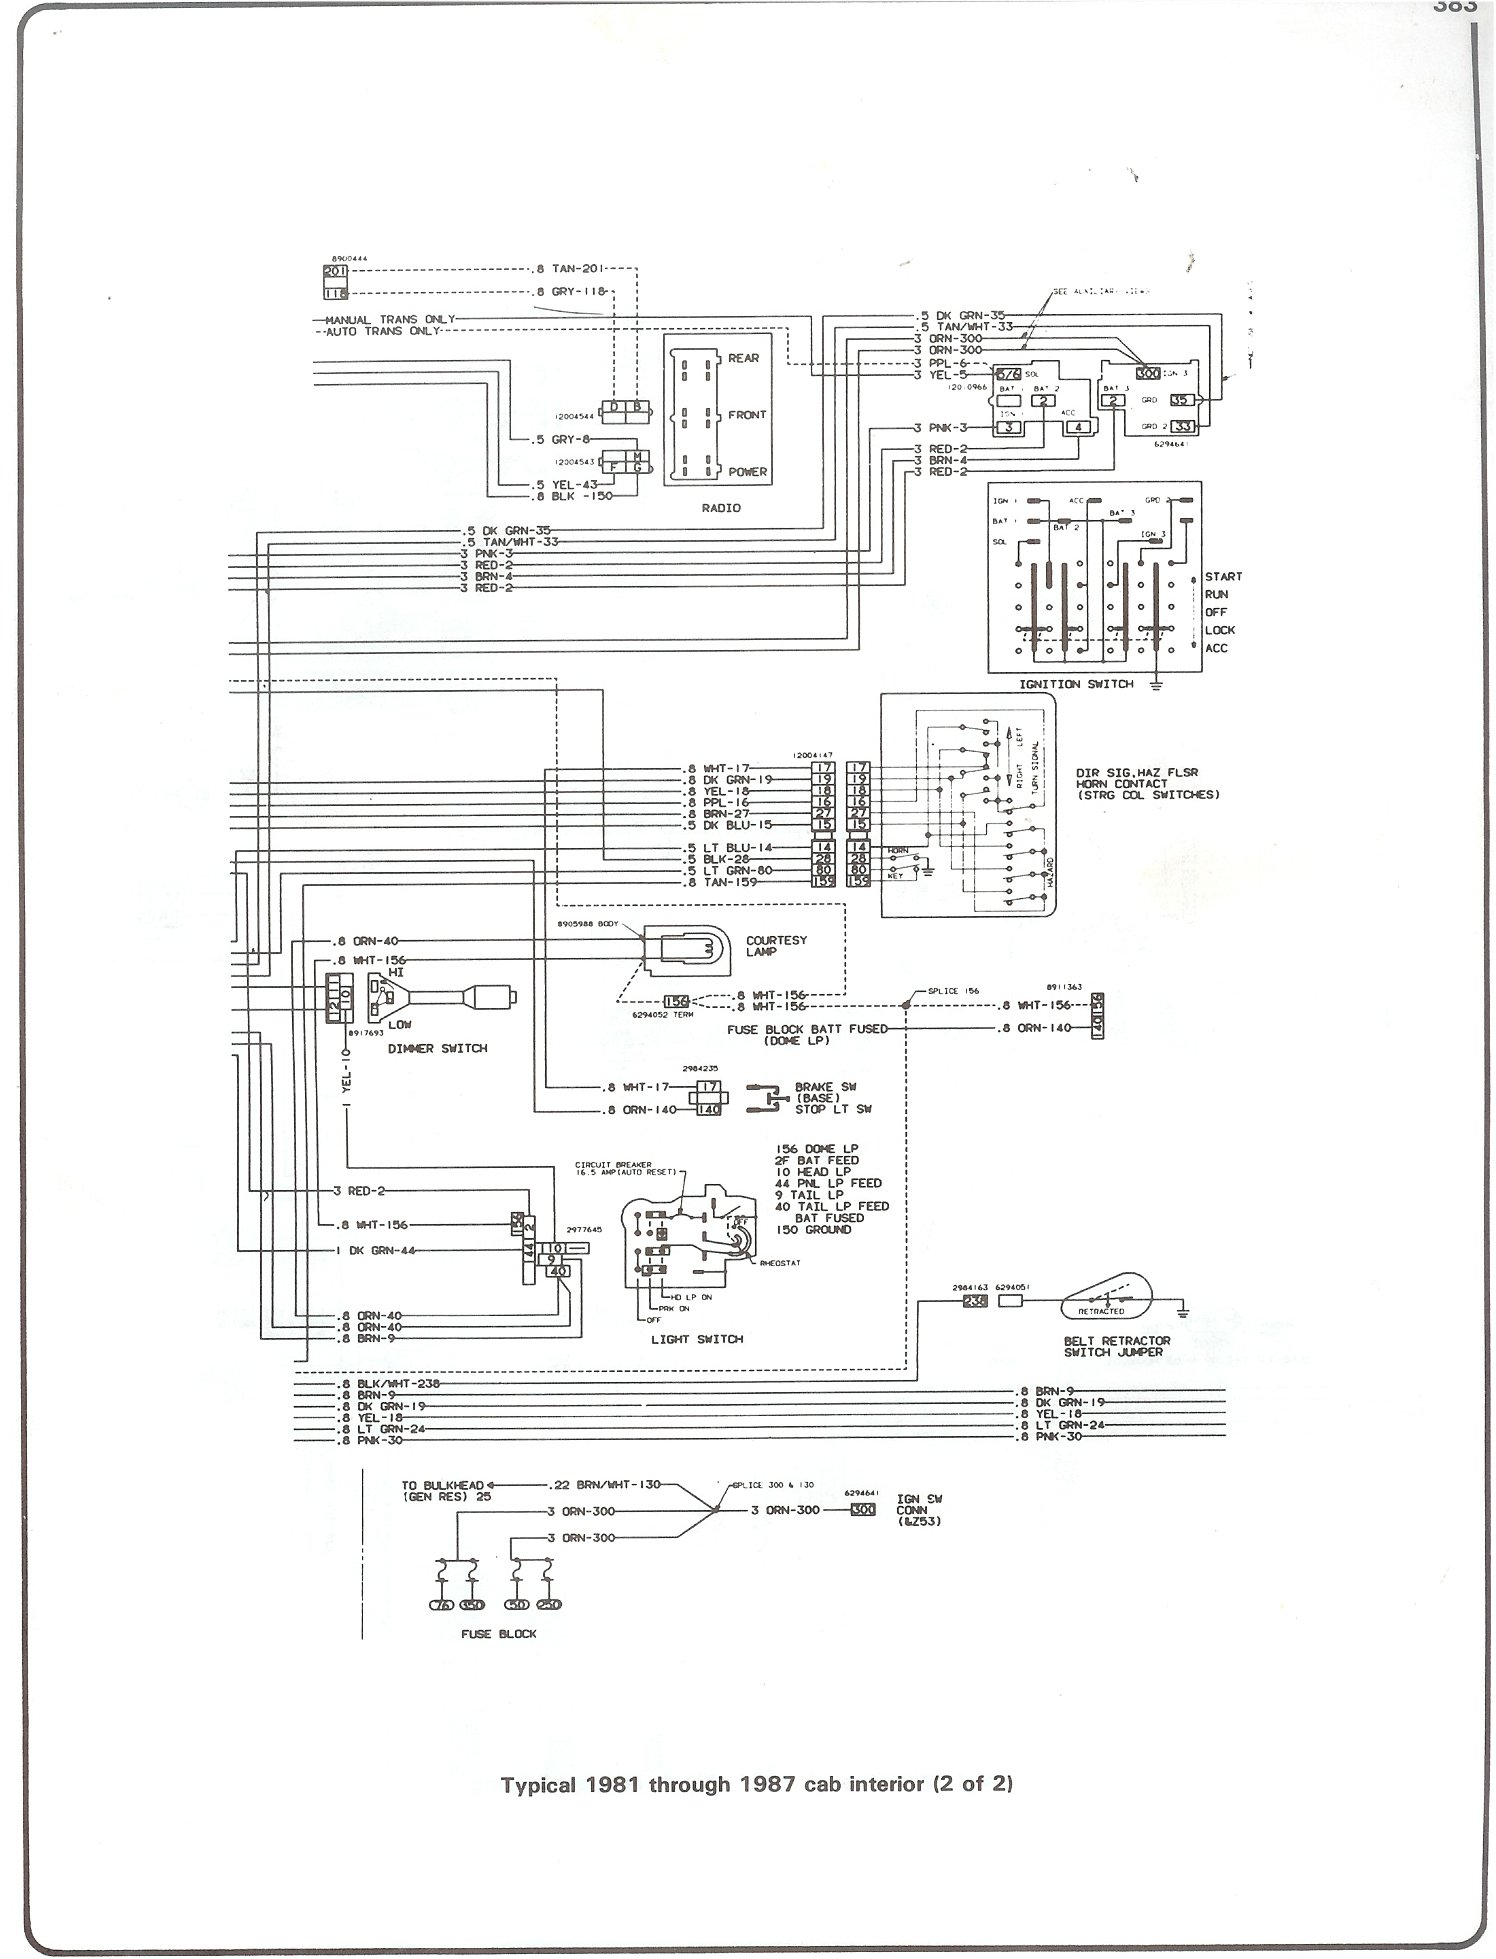 complete 73 87 wiring diagrams rh forum 73 87chevytrucks com 1984 chevy truck tail light wiring diagram 1984 chevy truck electrical wiring diagram